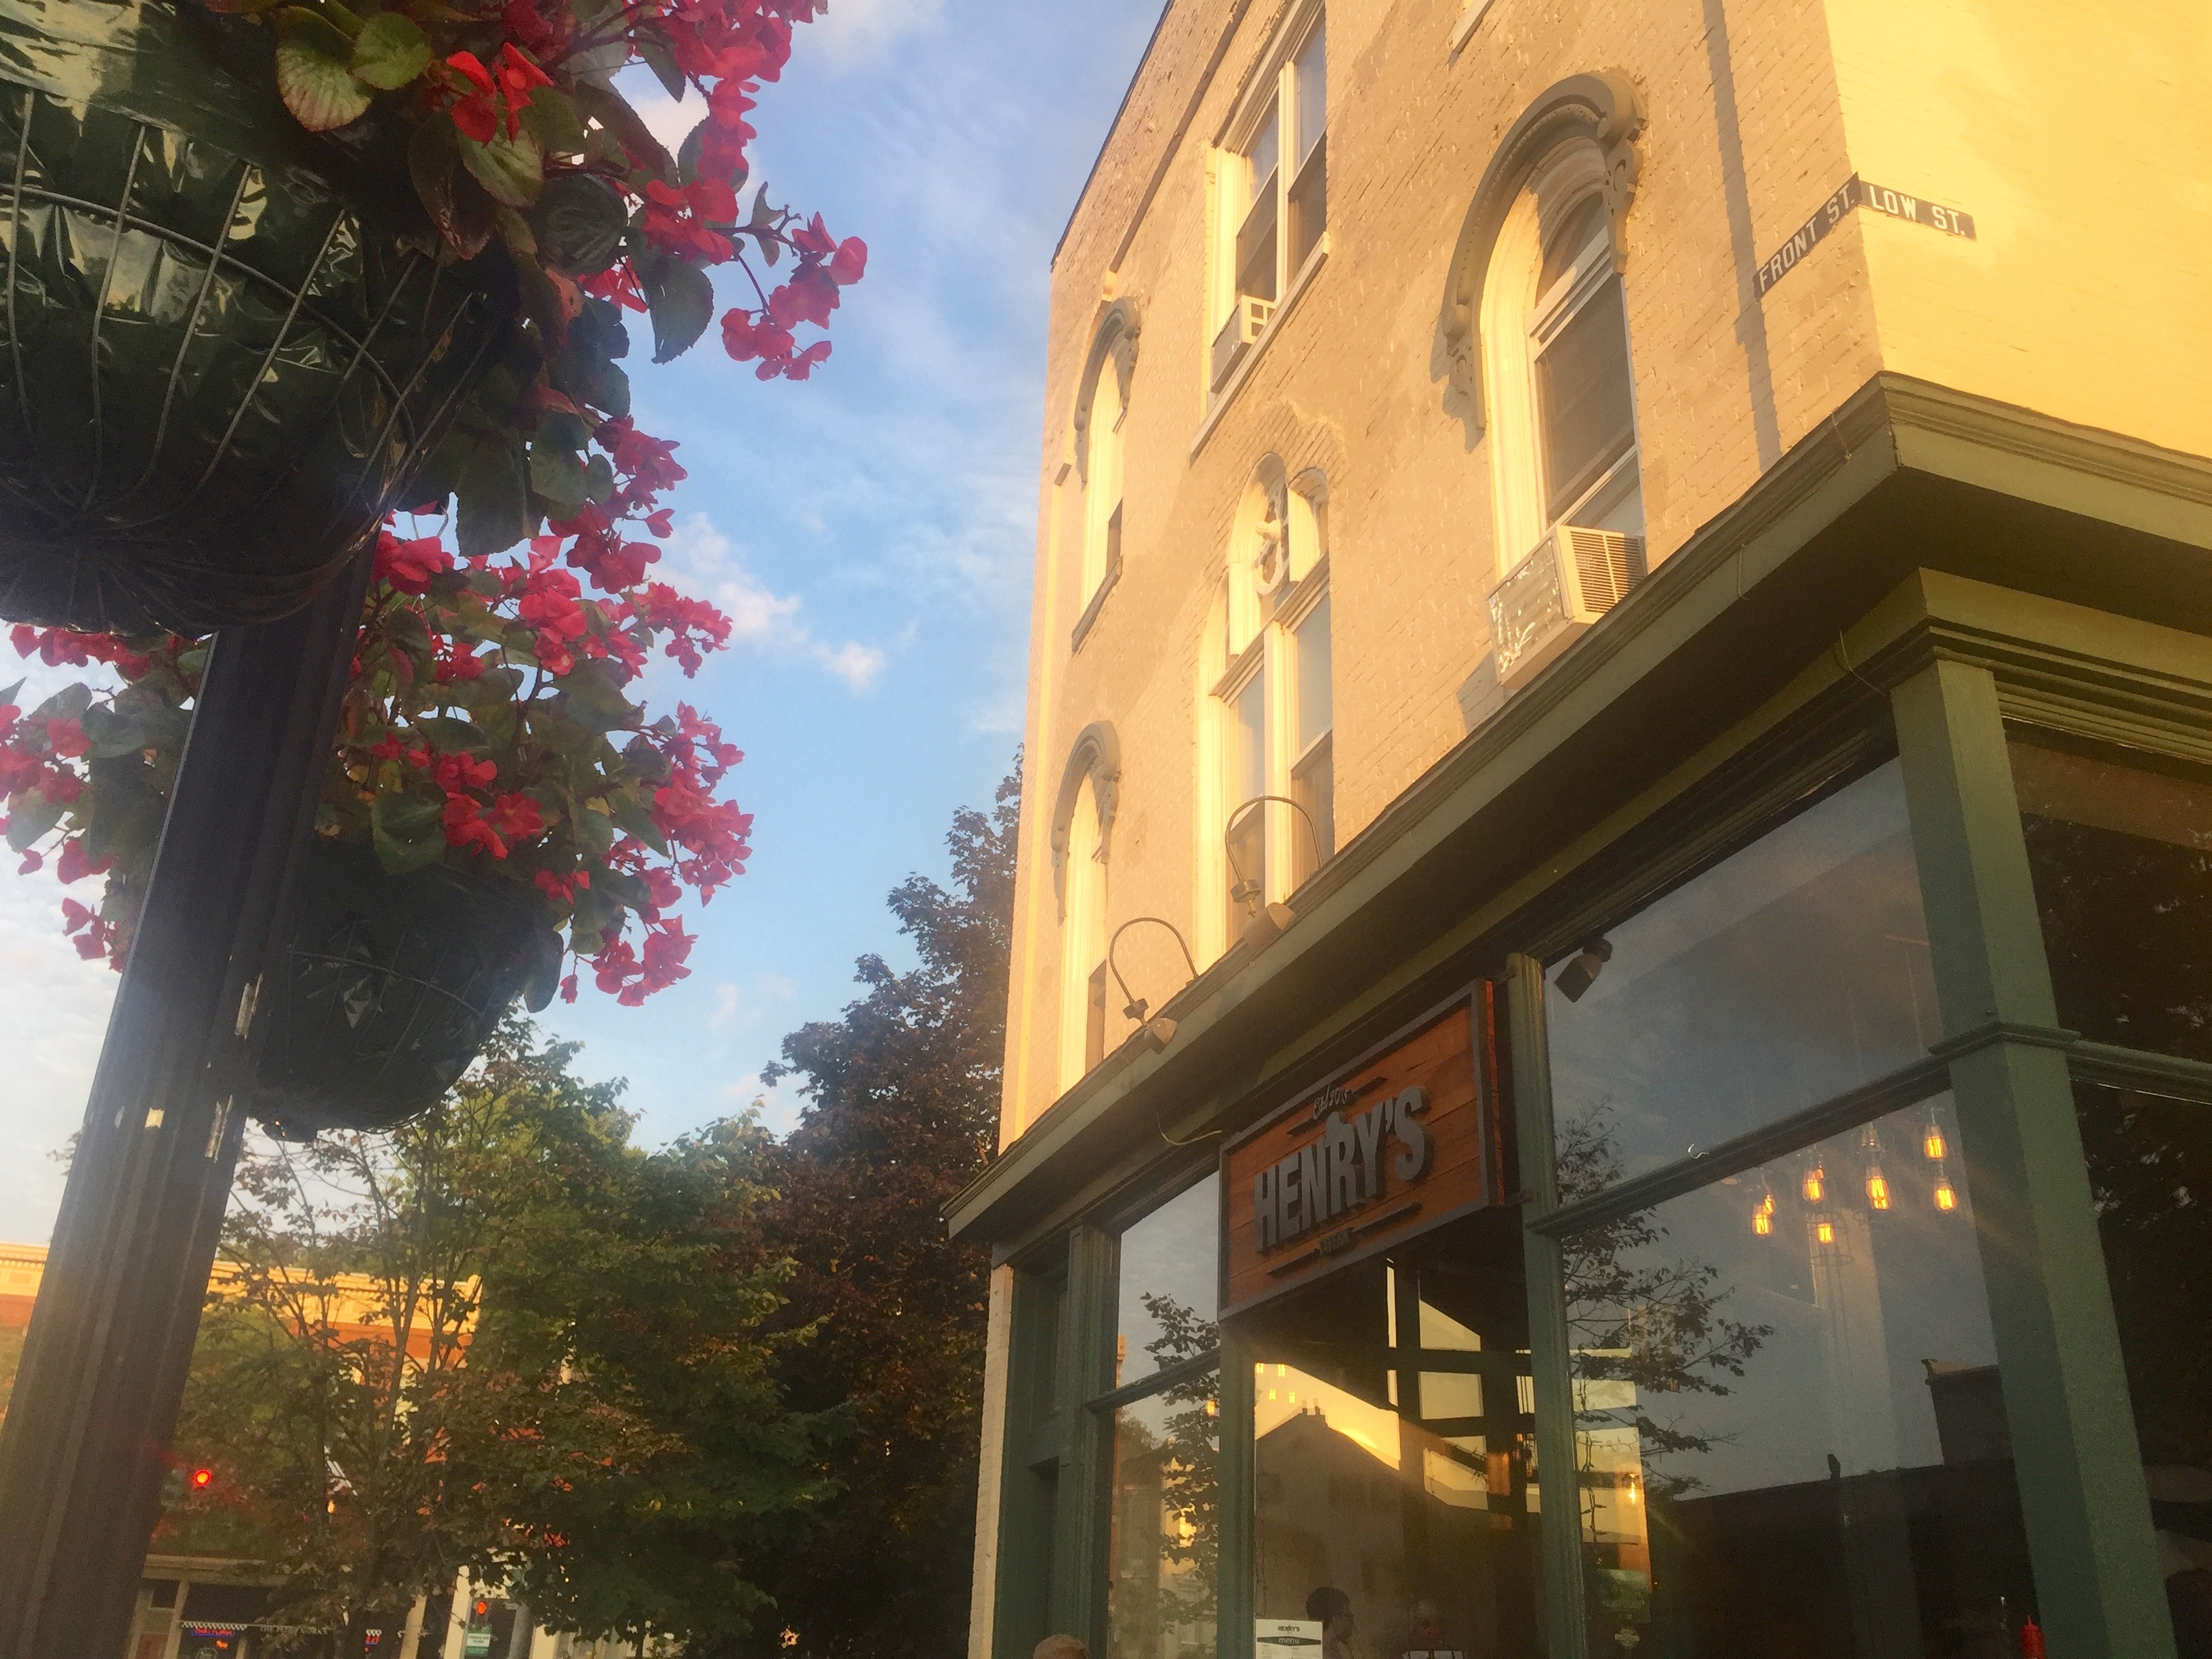 Review: Date Night Dinner at Henry's in Ballston Spa